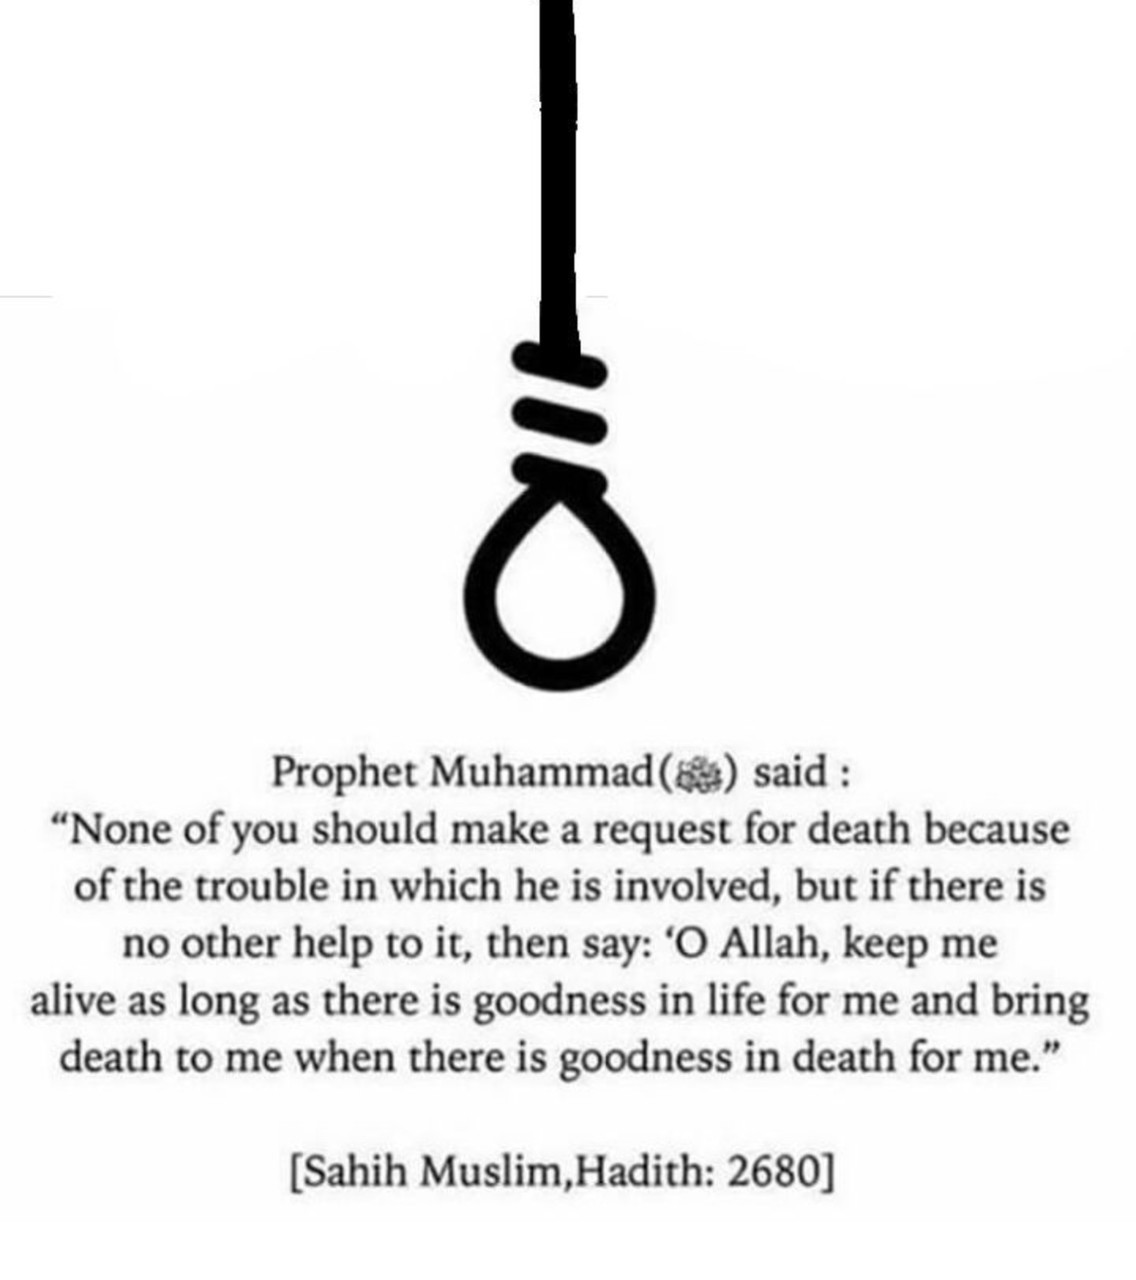 929 images about Islam on We Heart It | See more about islam